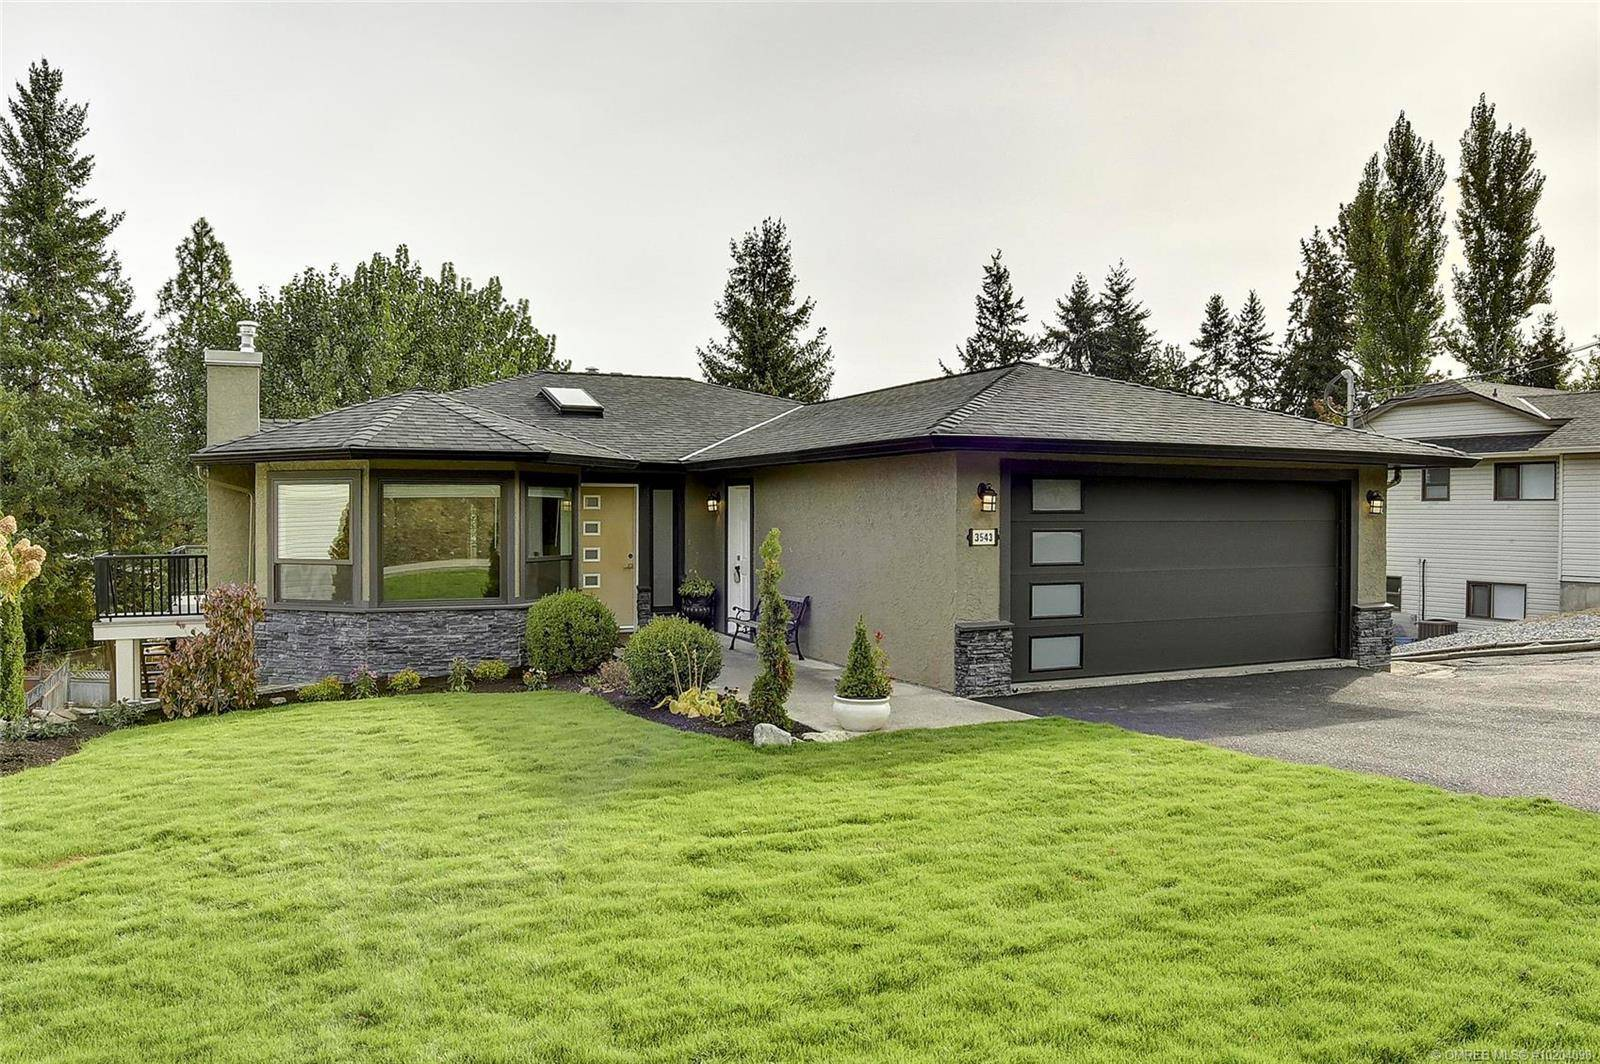 House for sale at 3543 Ranch Rd West Kelowna British Columbia - MLS: 10204098